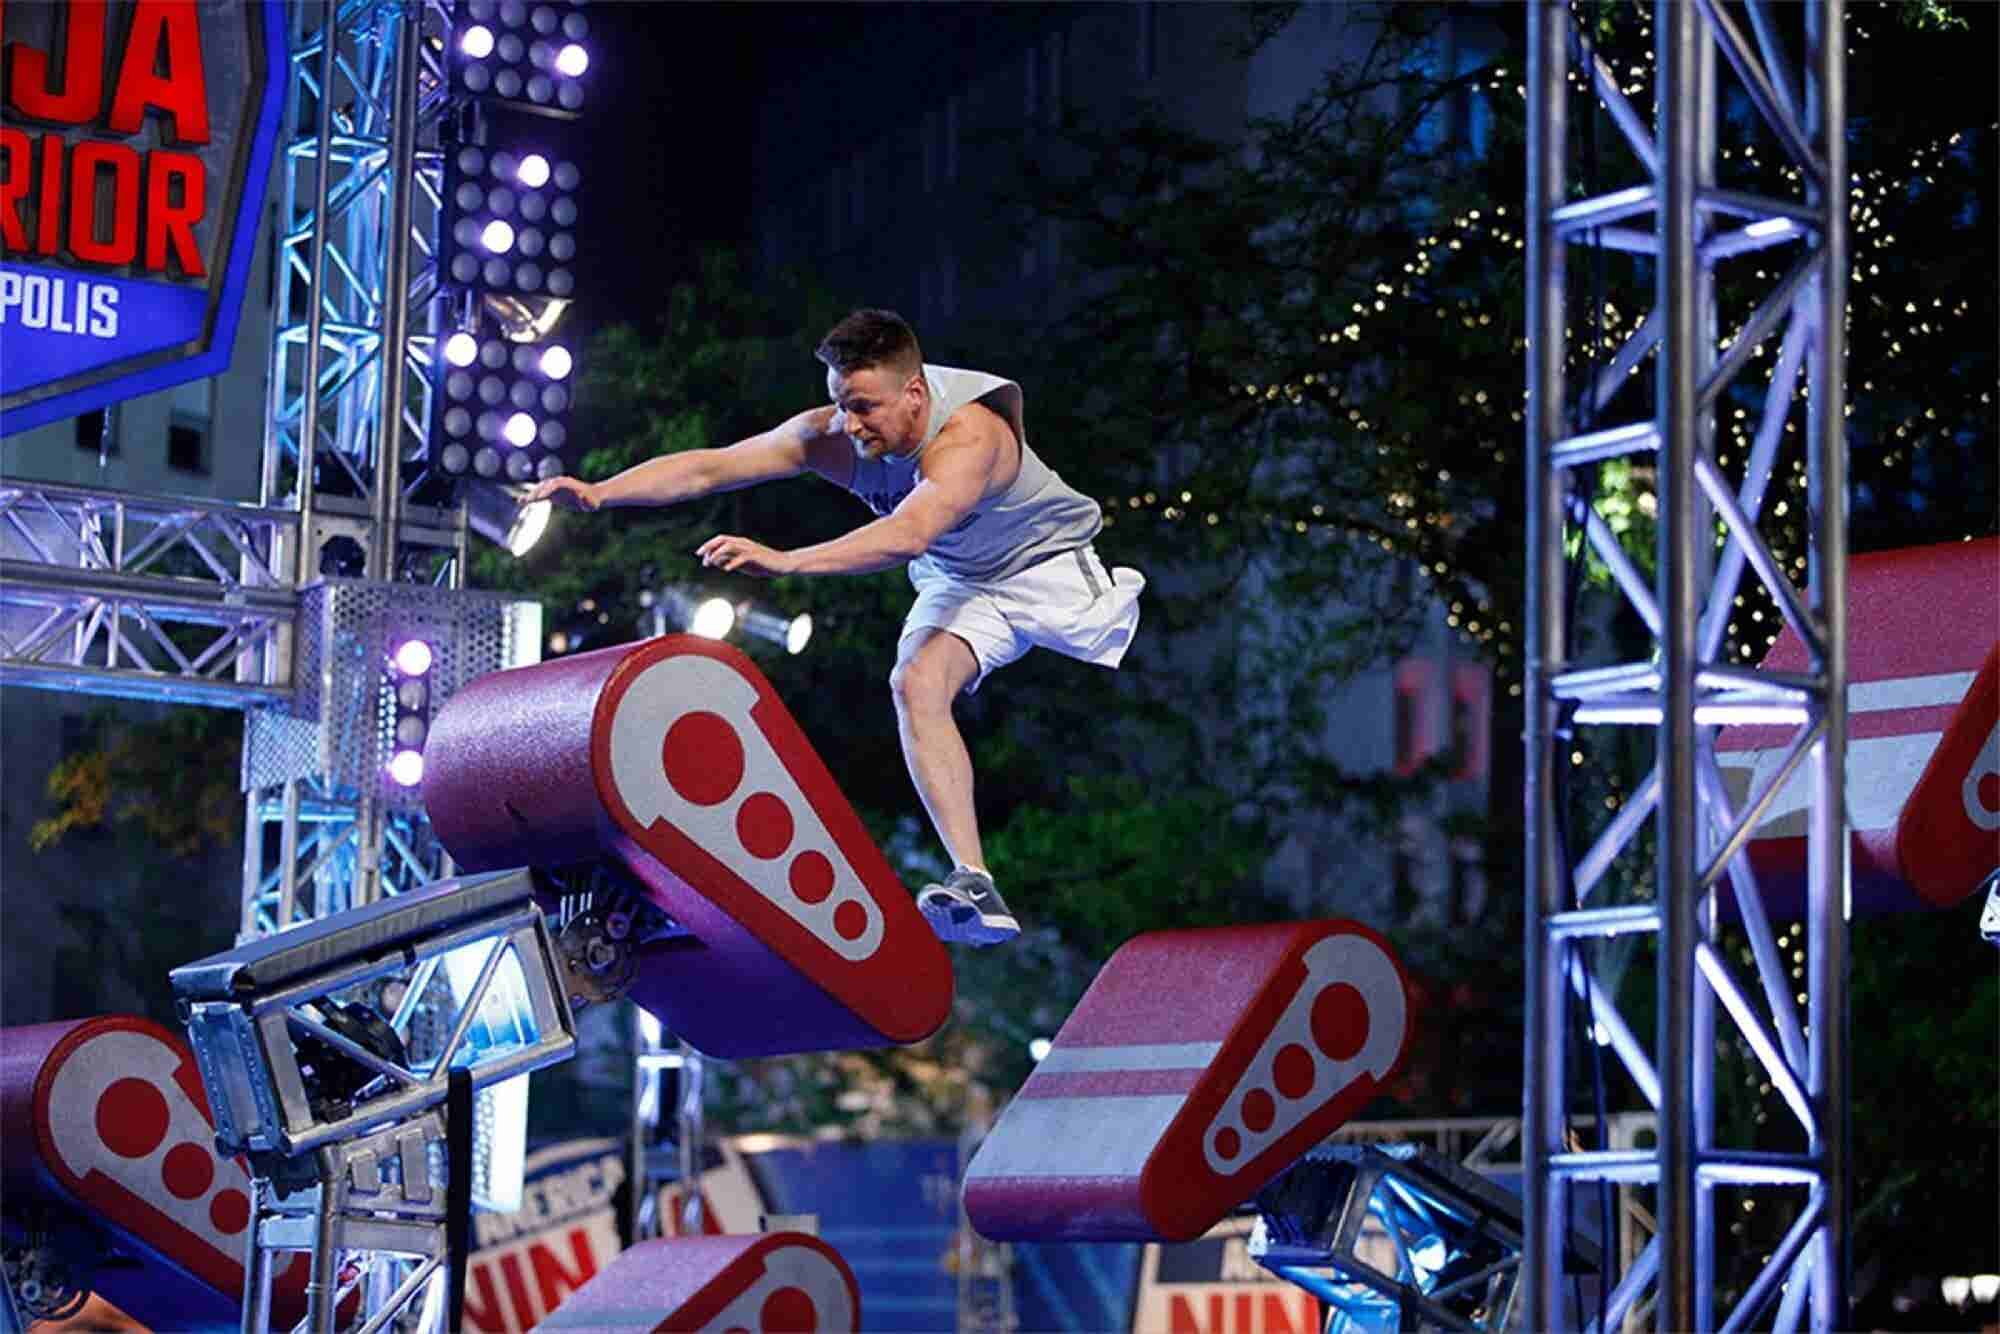 Think You've Got Obstacles? Watch This One-Legged Athlete Compete on 'American Ninja Warrior.'